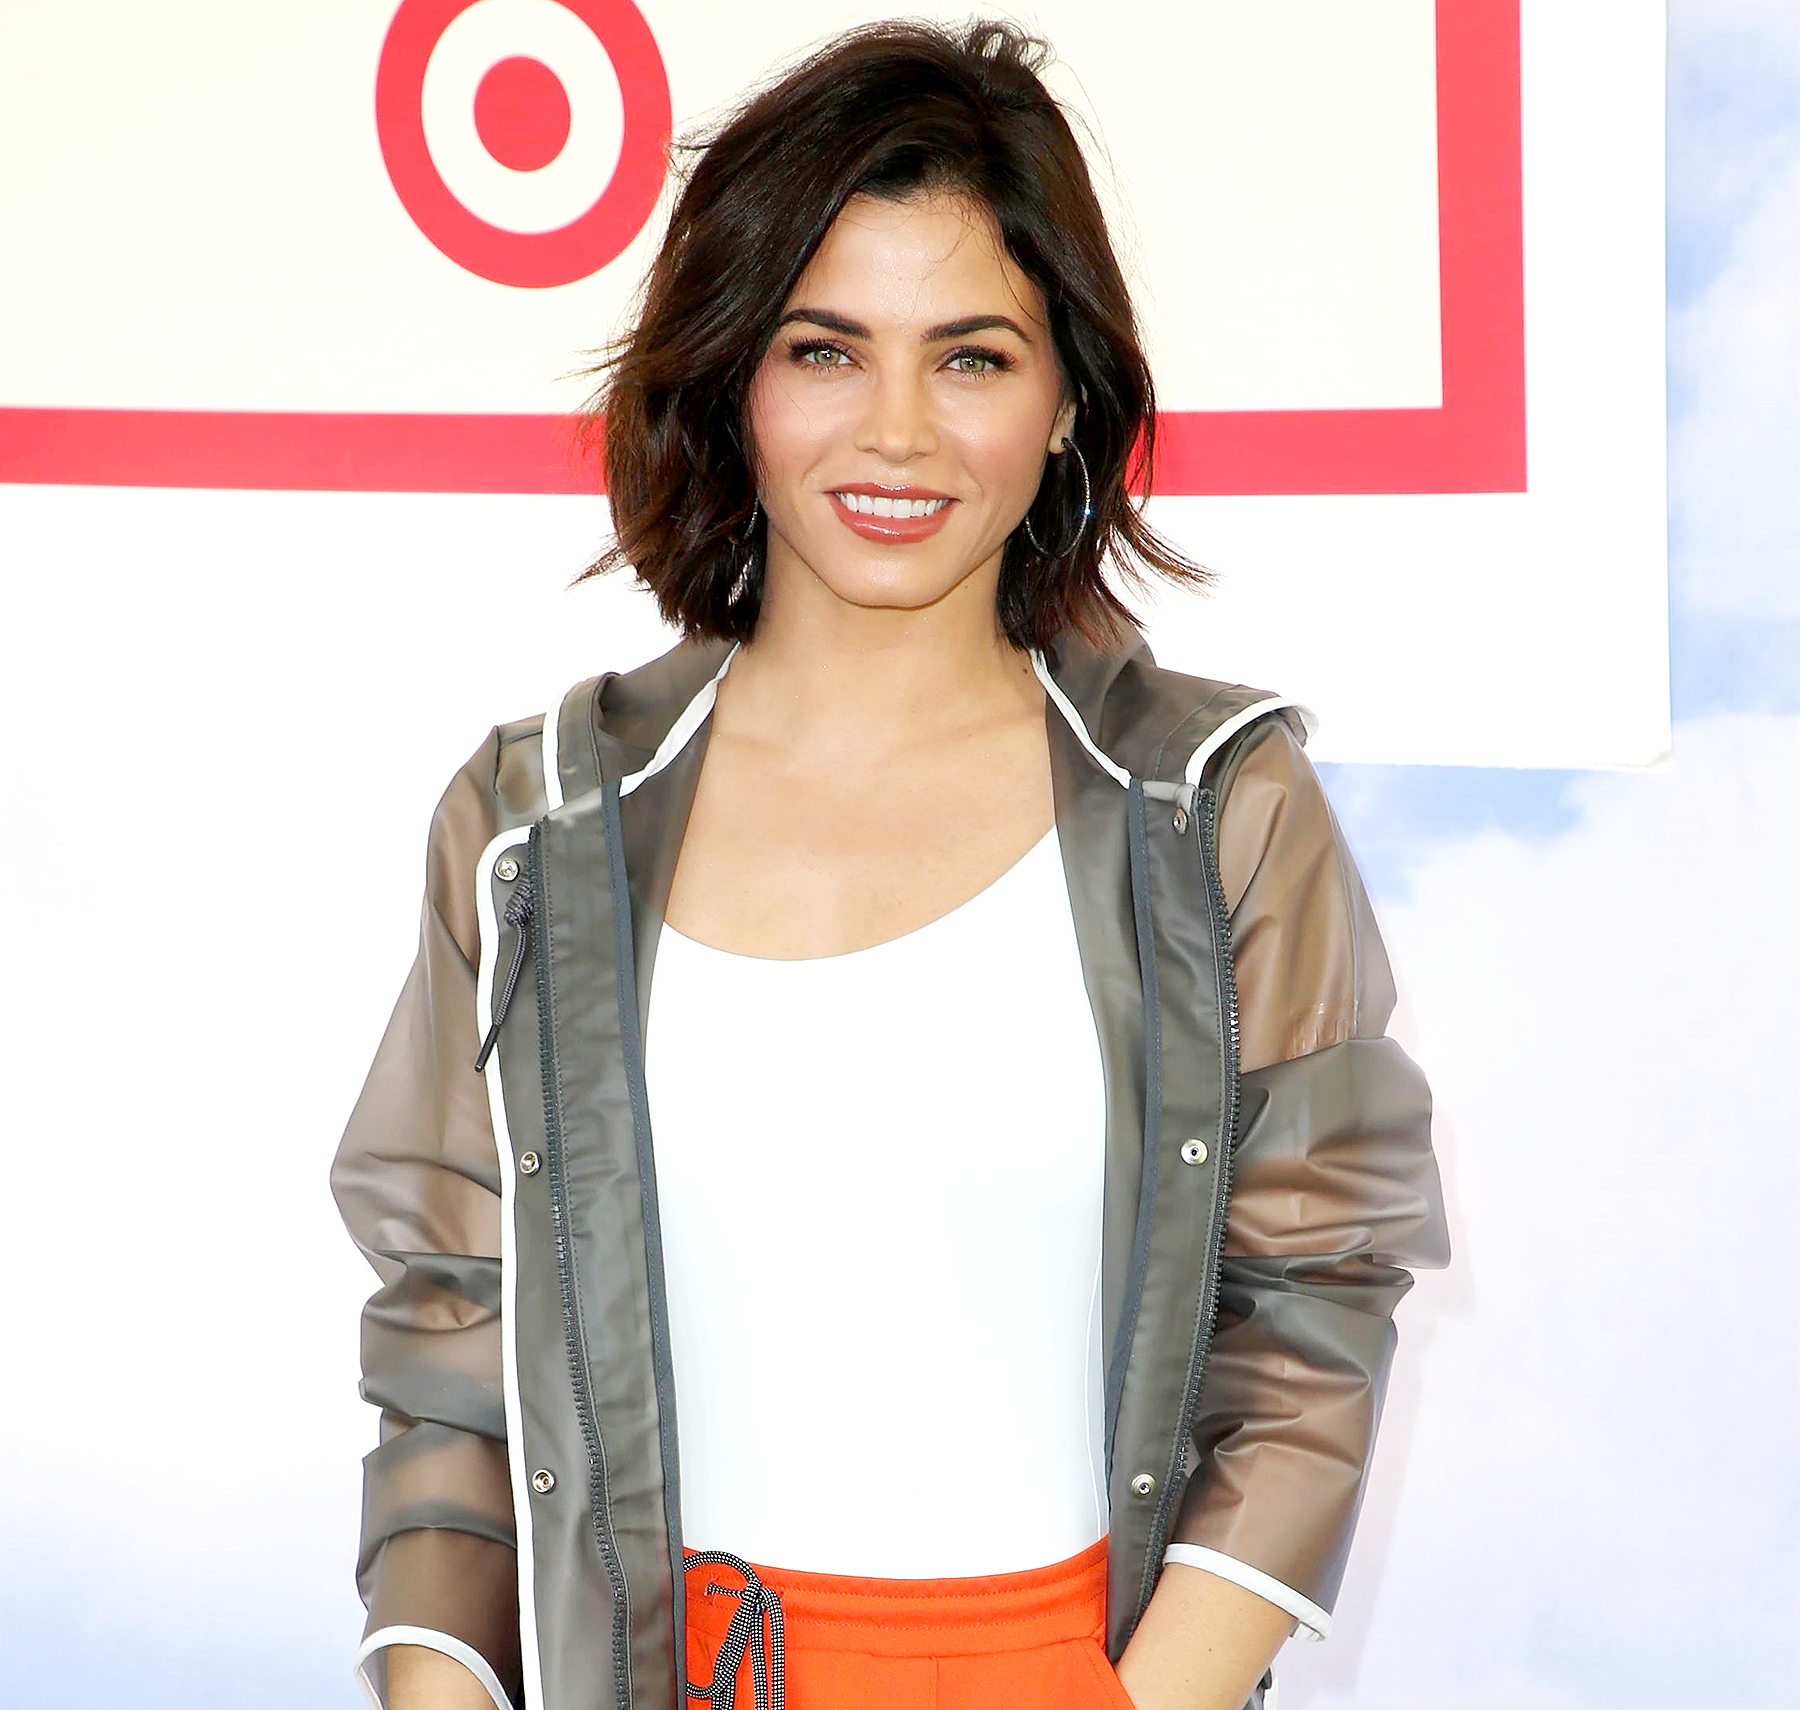 Jenna Dewan Drops the 'Tatum' From Her Name on Social Media